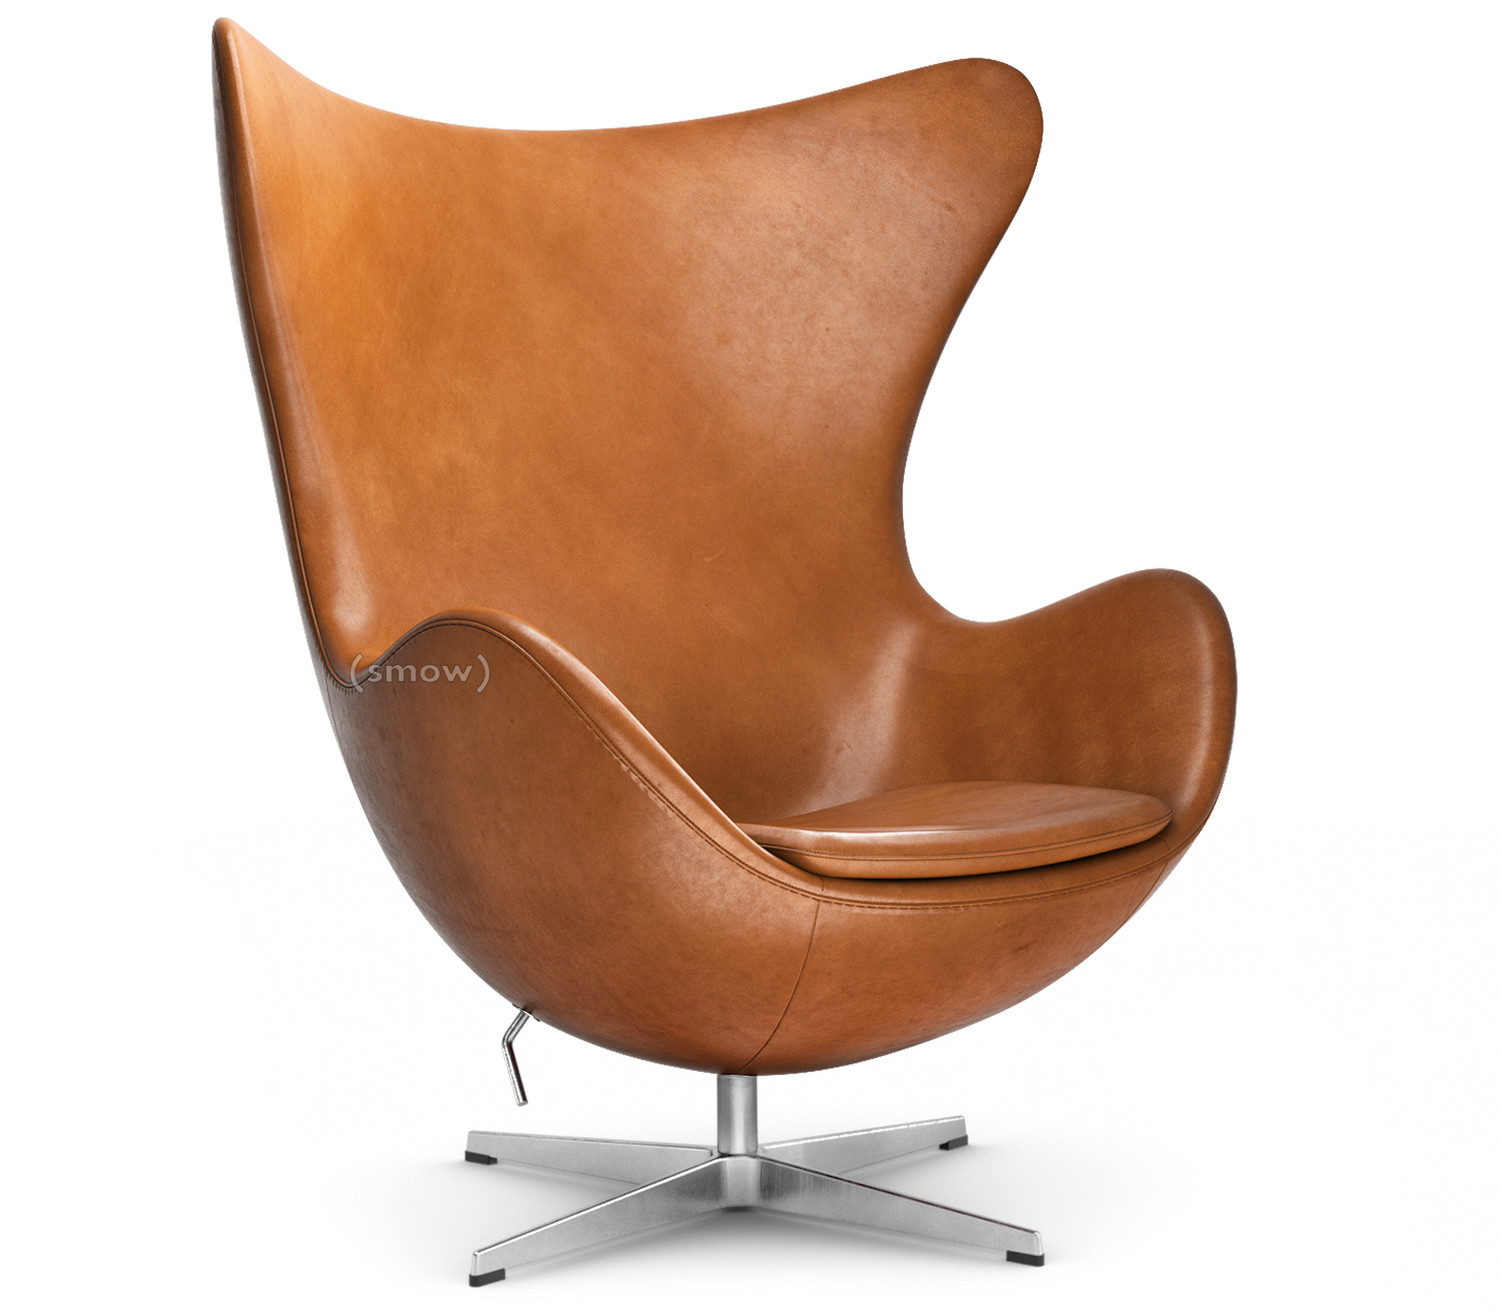 GroBartig Egg Chair